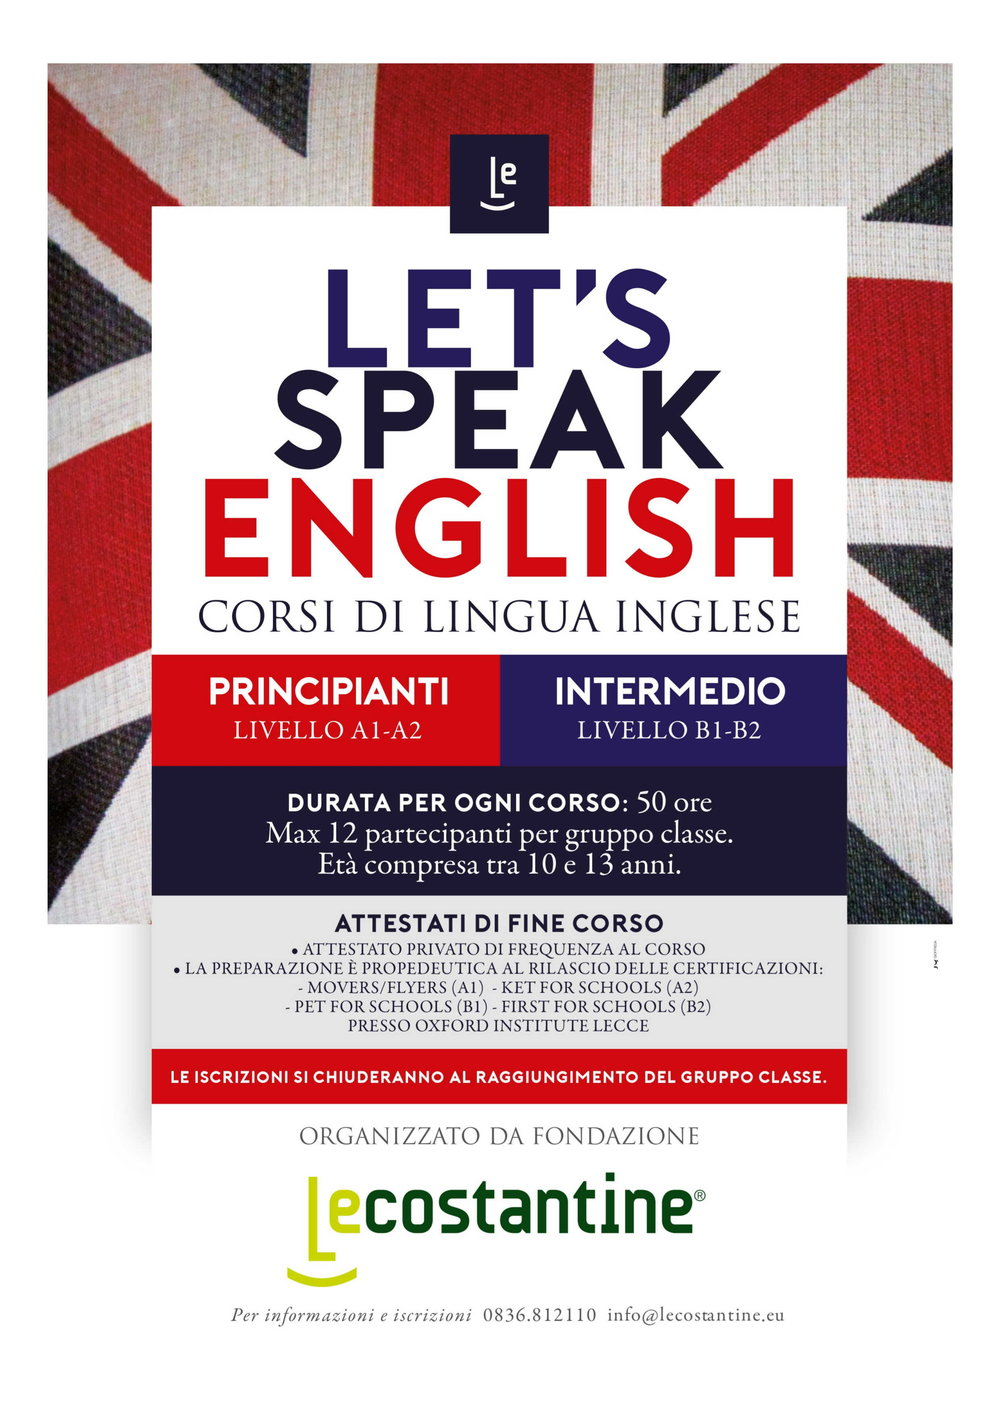 Let's Speak English CORSO INGLESE.jpg